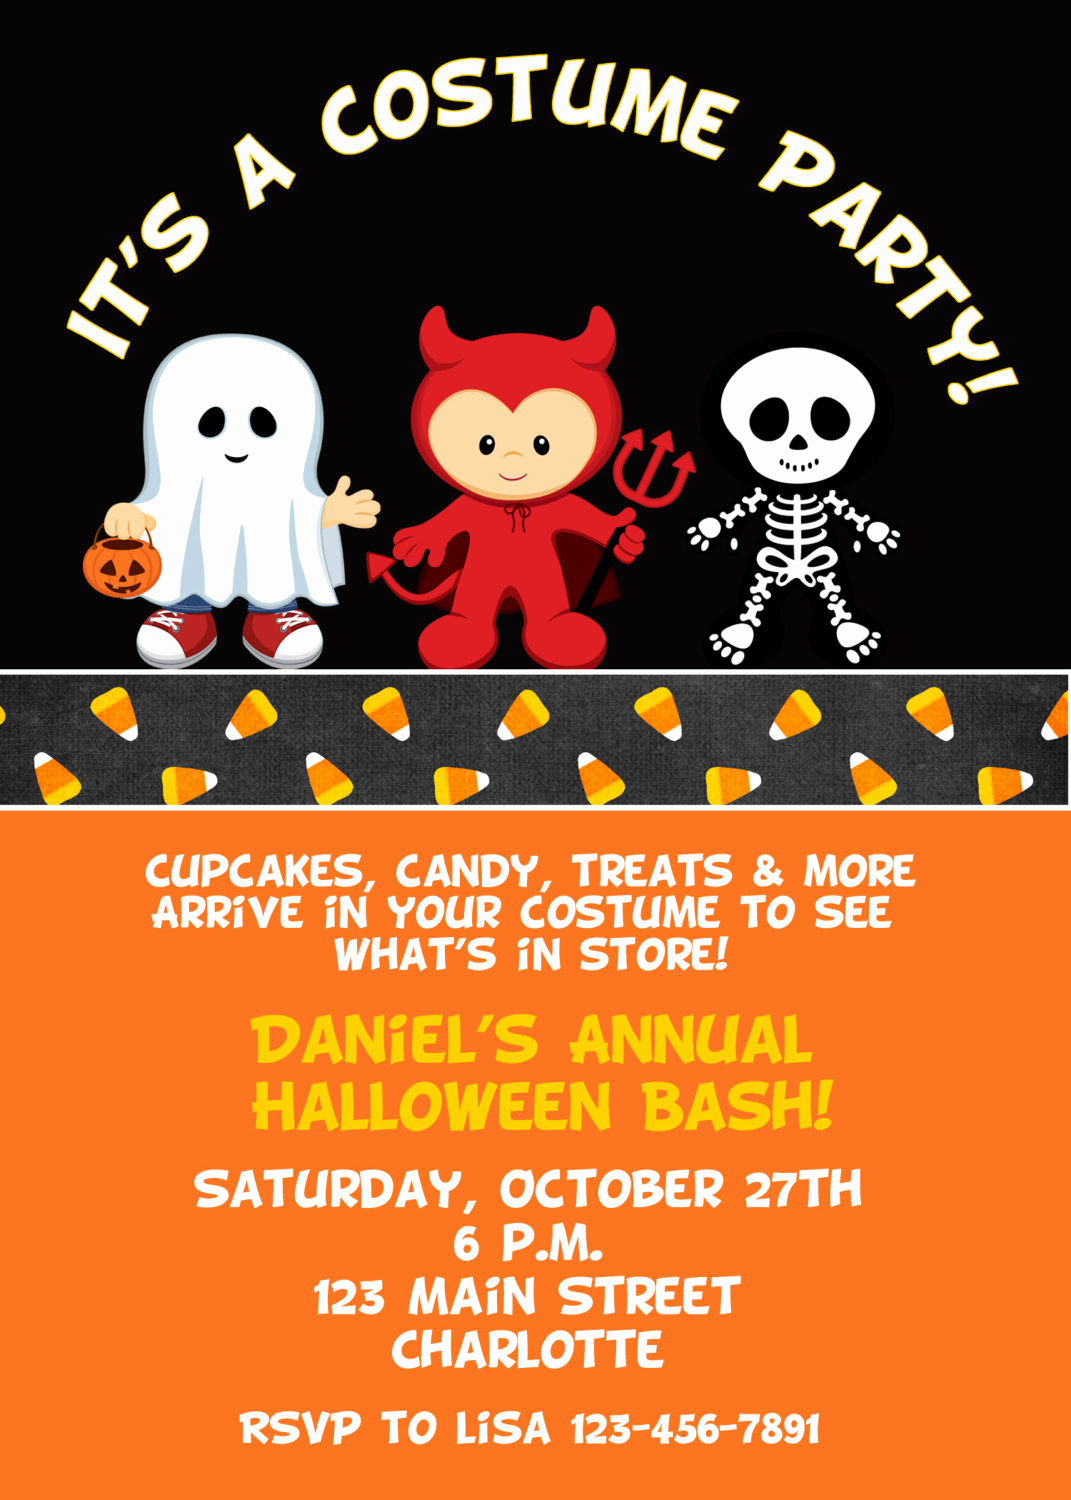 Halloween Costume Party Invitation Fresh Halloween Costume Party Invitation Halloween Costume